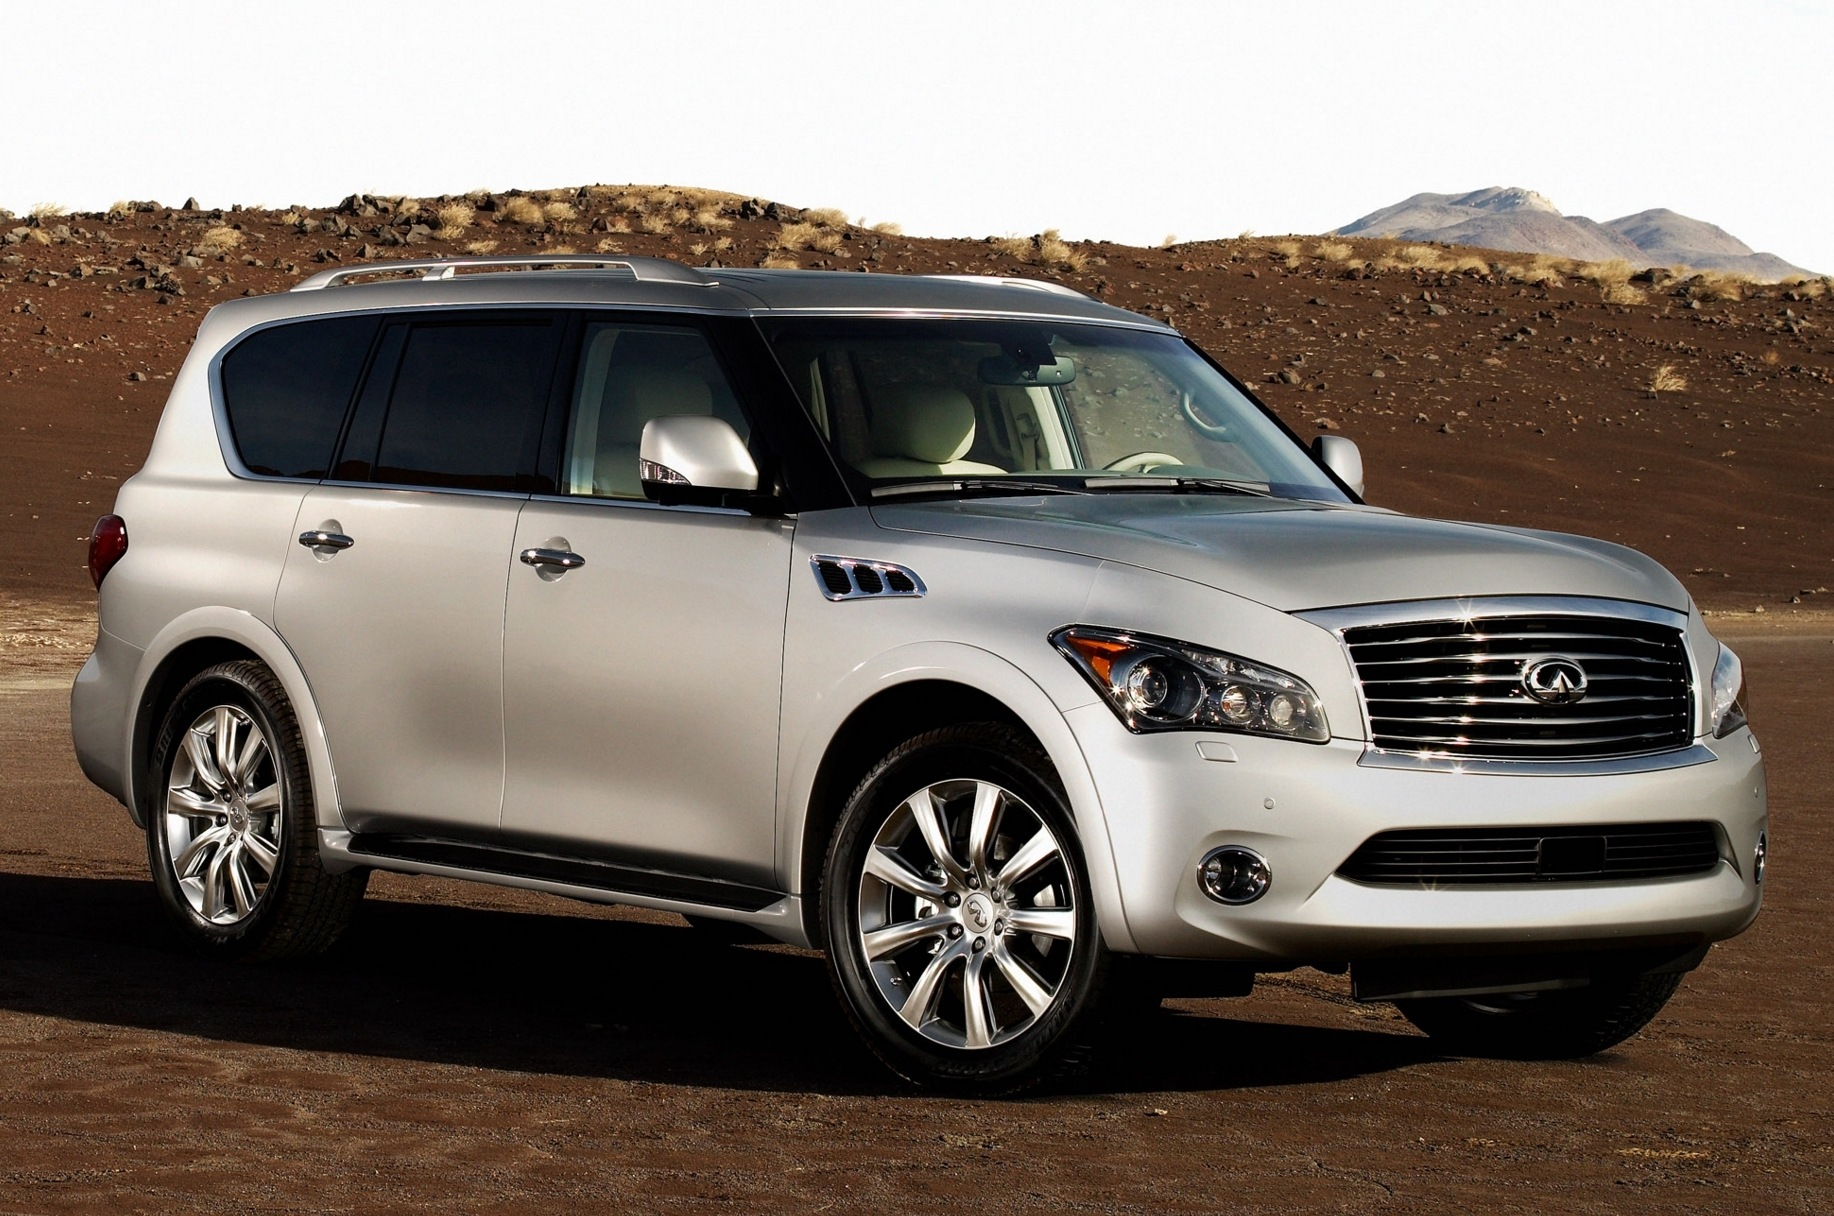 3dtuning of infiniti qx56 suv 2010 unique on line car configurator for more than. Black Bedroom Furniture Sets. Home Design Ideas